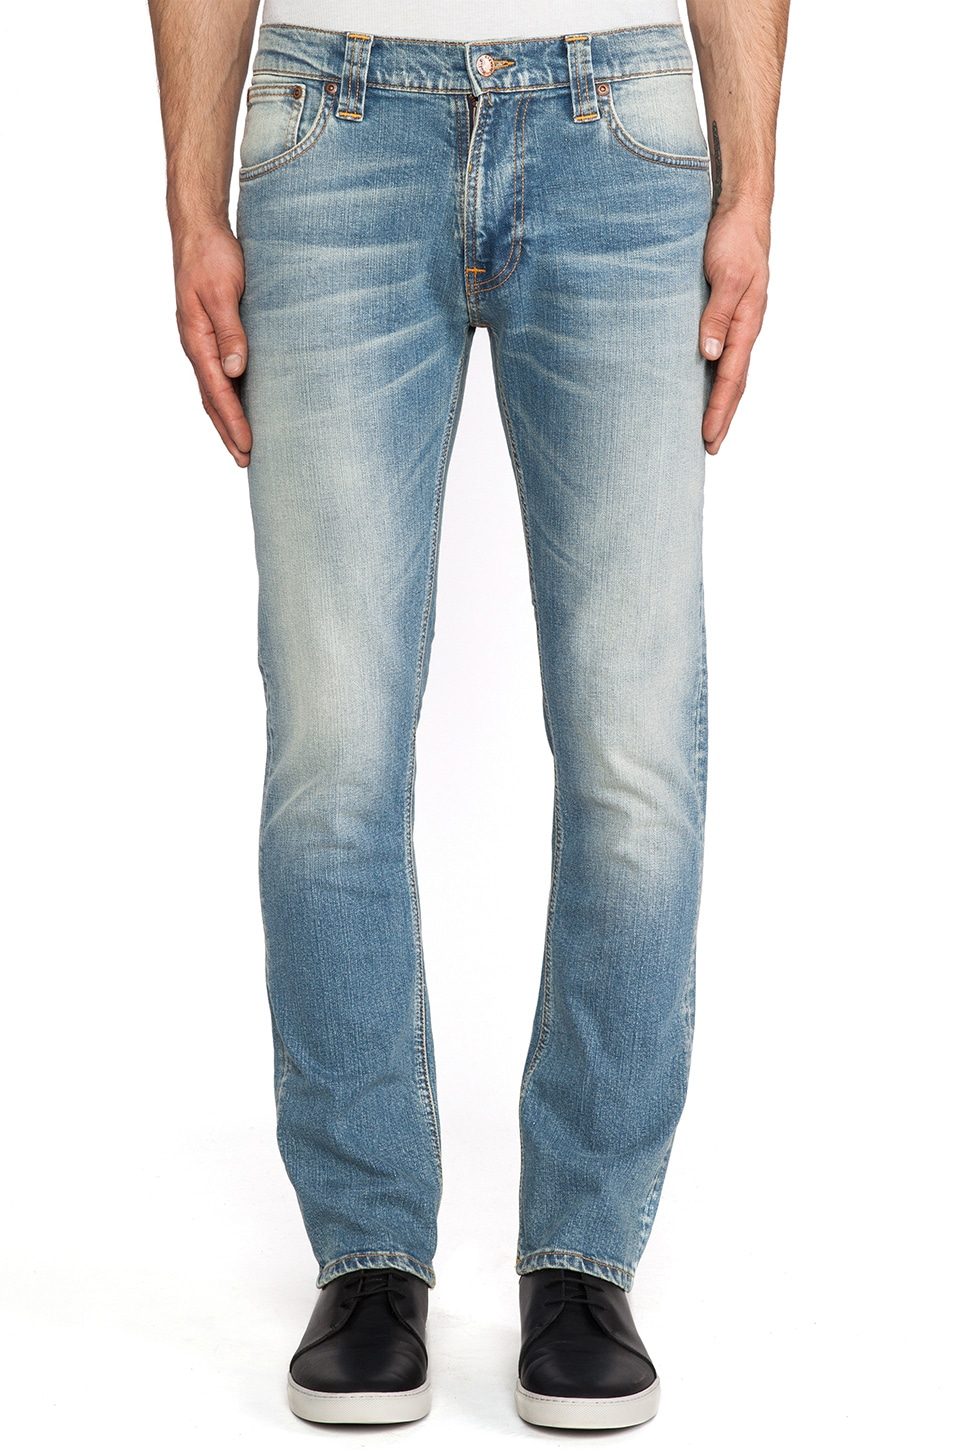 Nudie Jeans Thin Finn in Org. Jade Denim